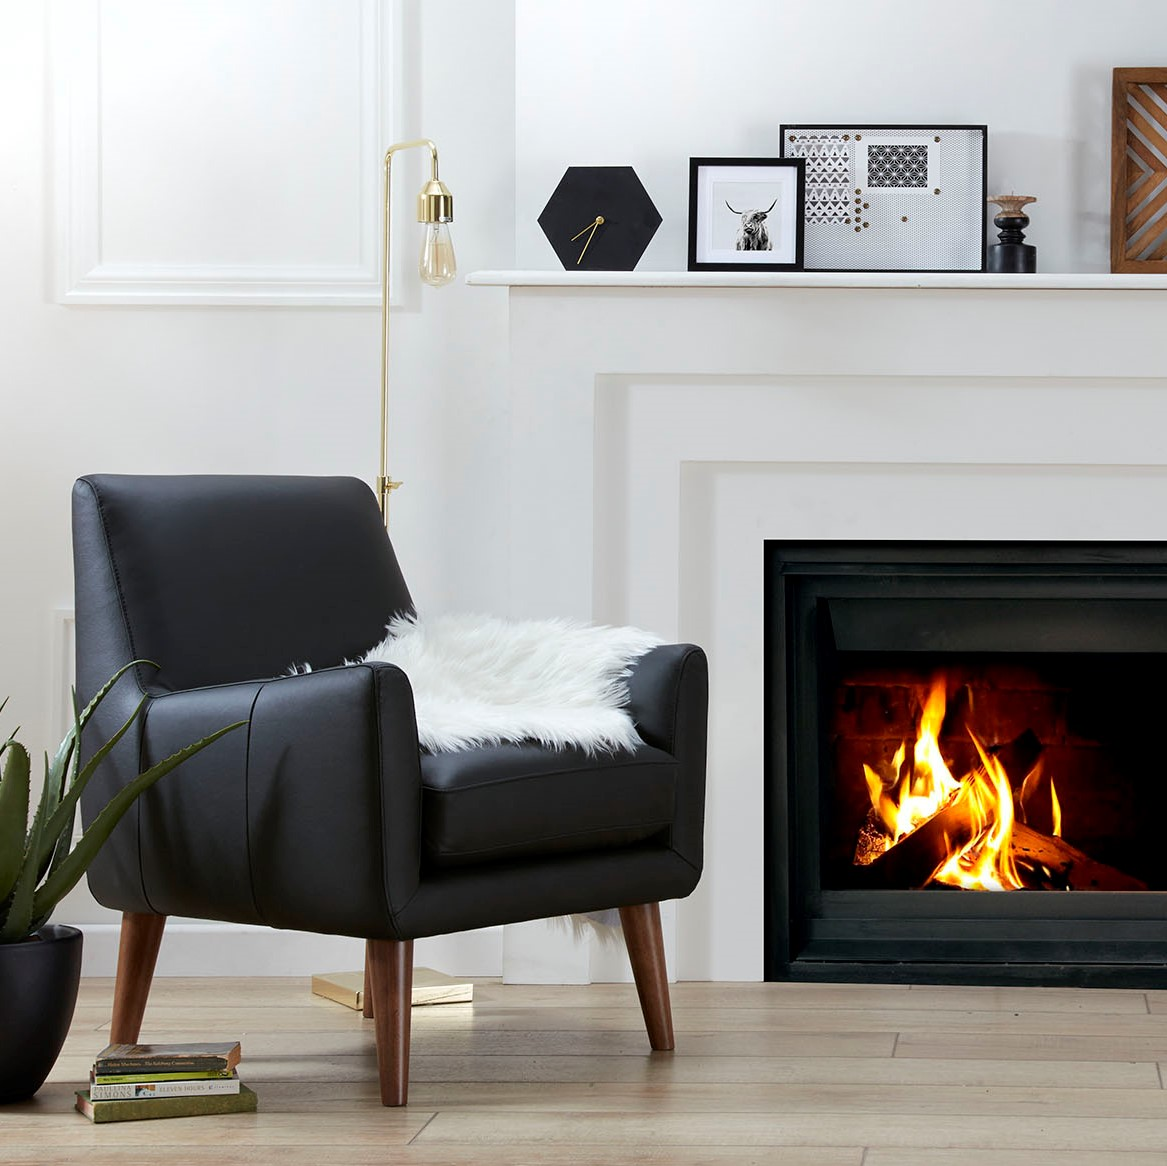 black armchair close to a fireplace